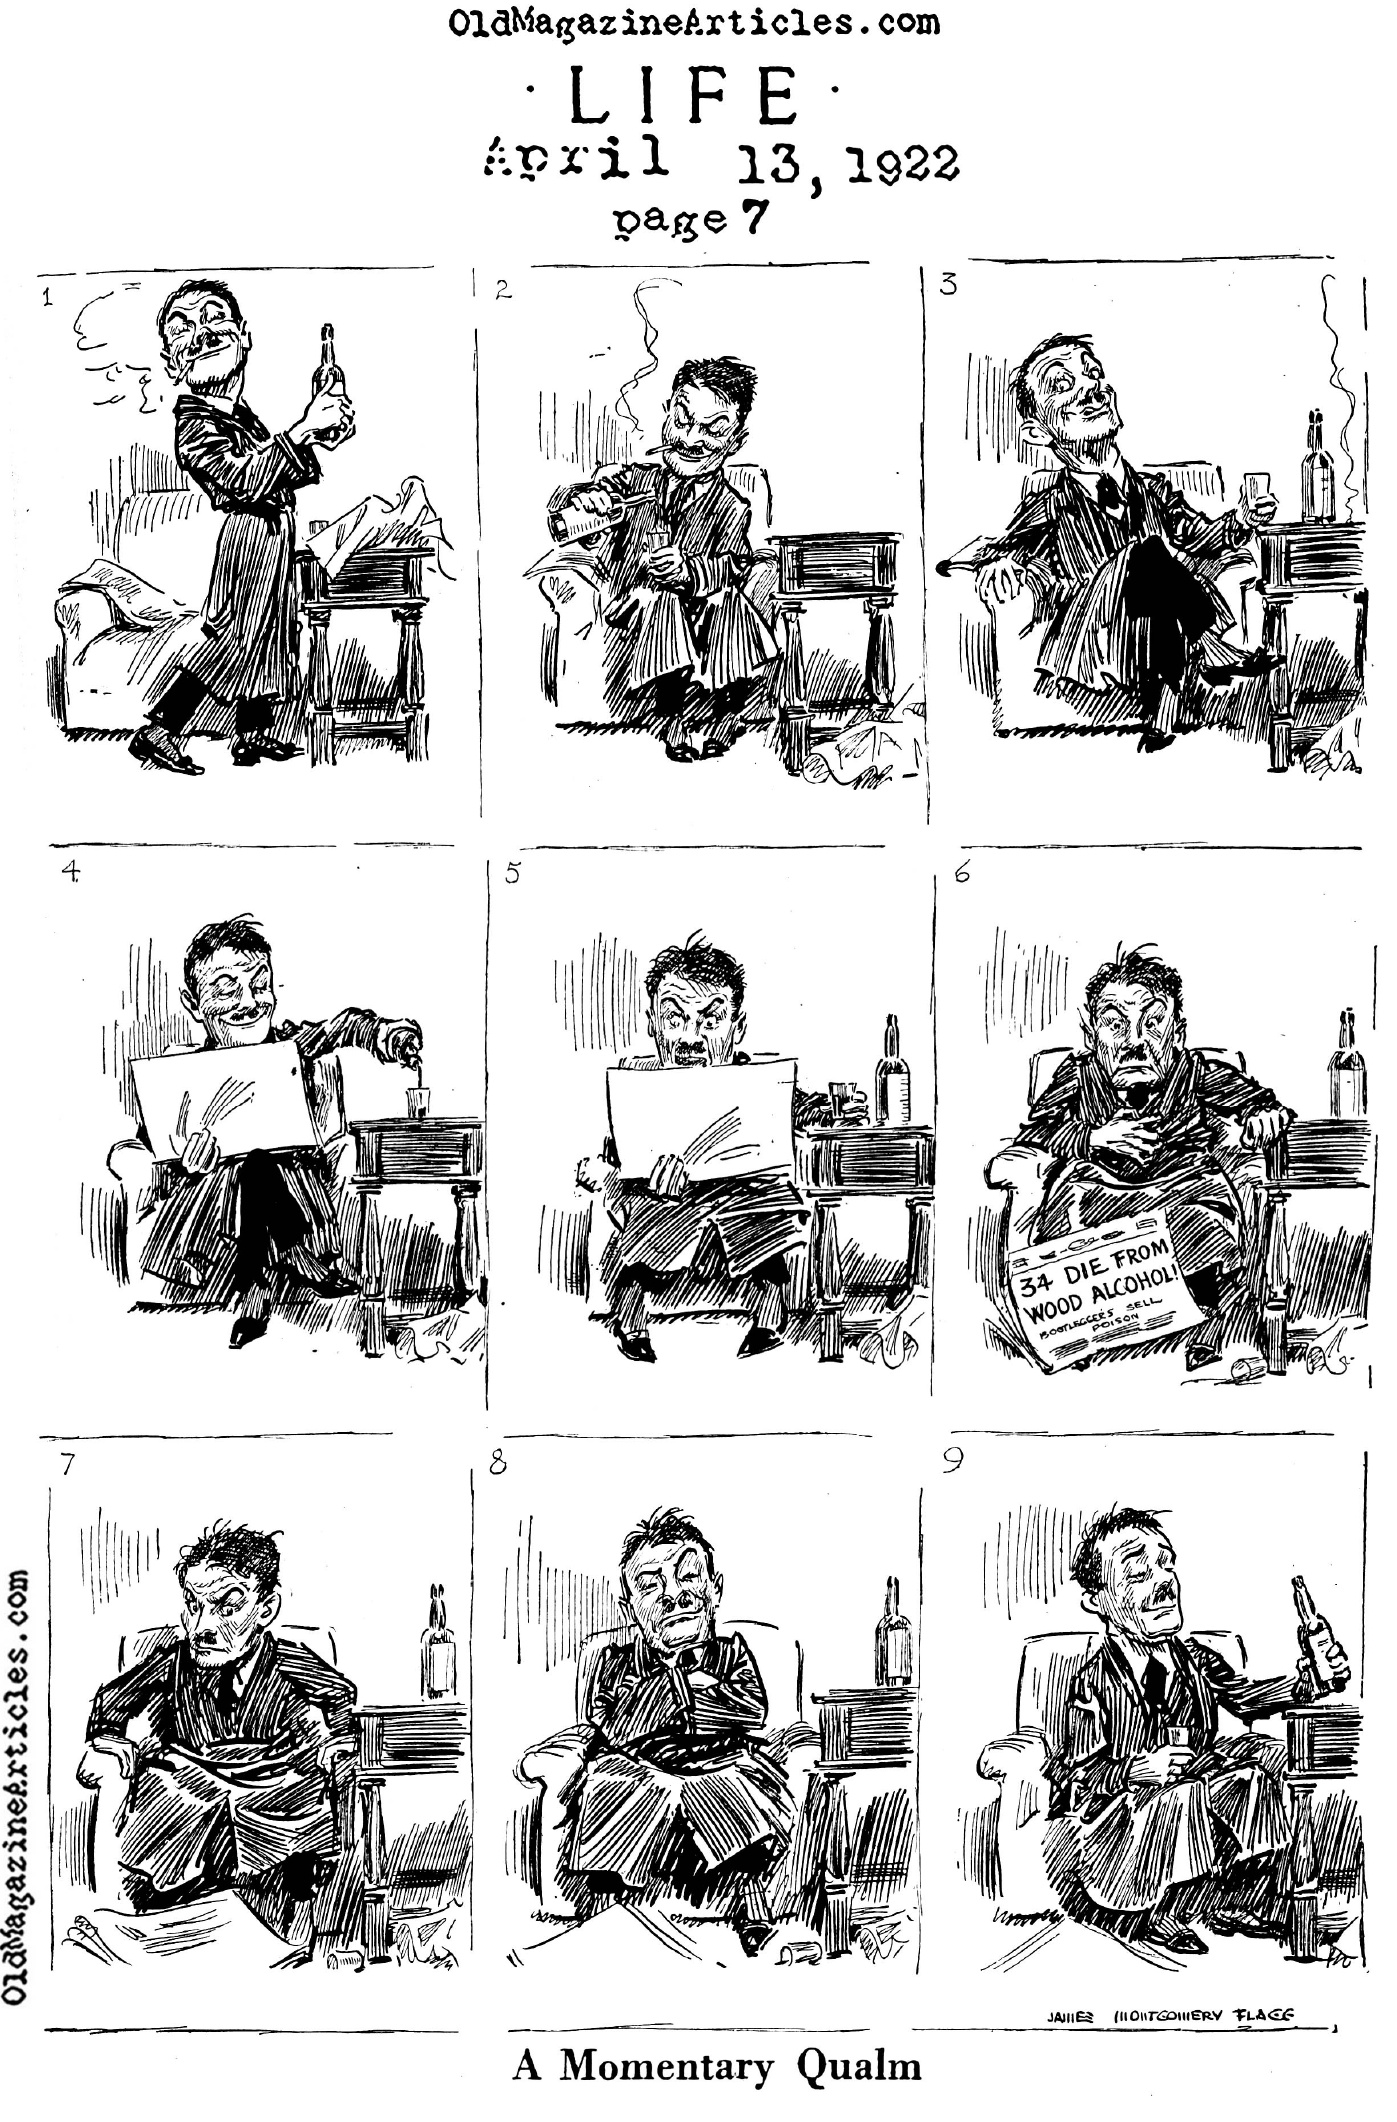 james montgomery flagg cartoon 1922 what was dangerous about a prohibition cartoon by james montgommery flagg life magazine 1922